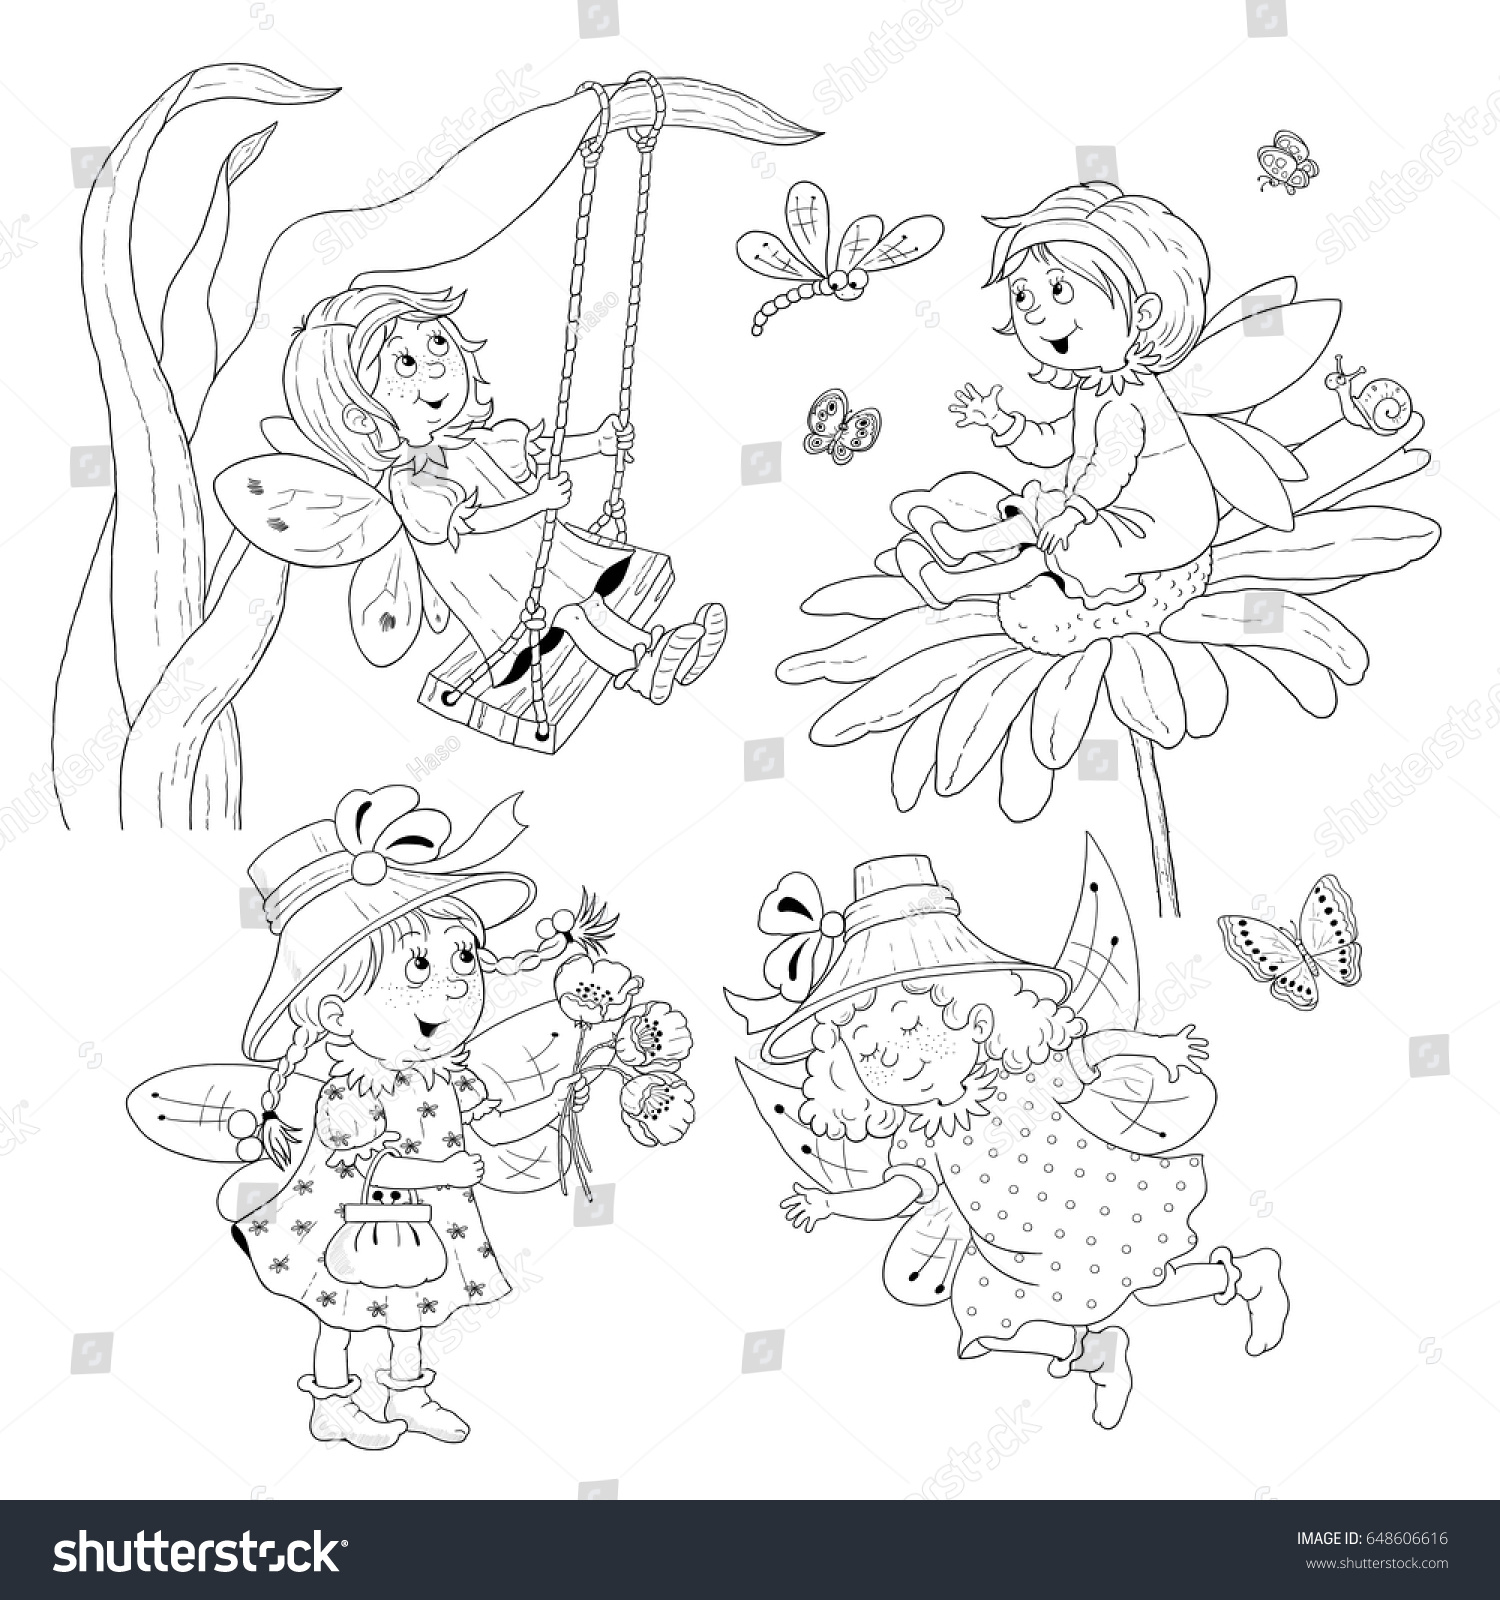 Four Cute Fairies Fairy Tale Coloring Stock Illustration